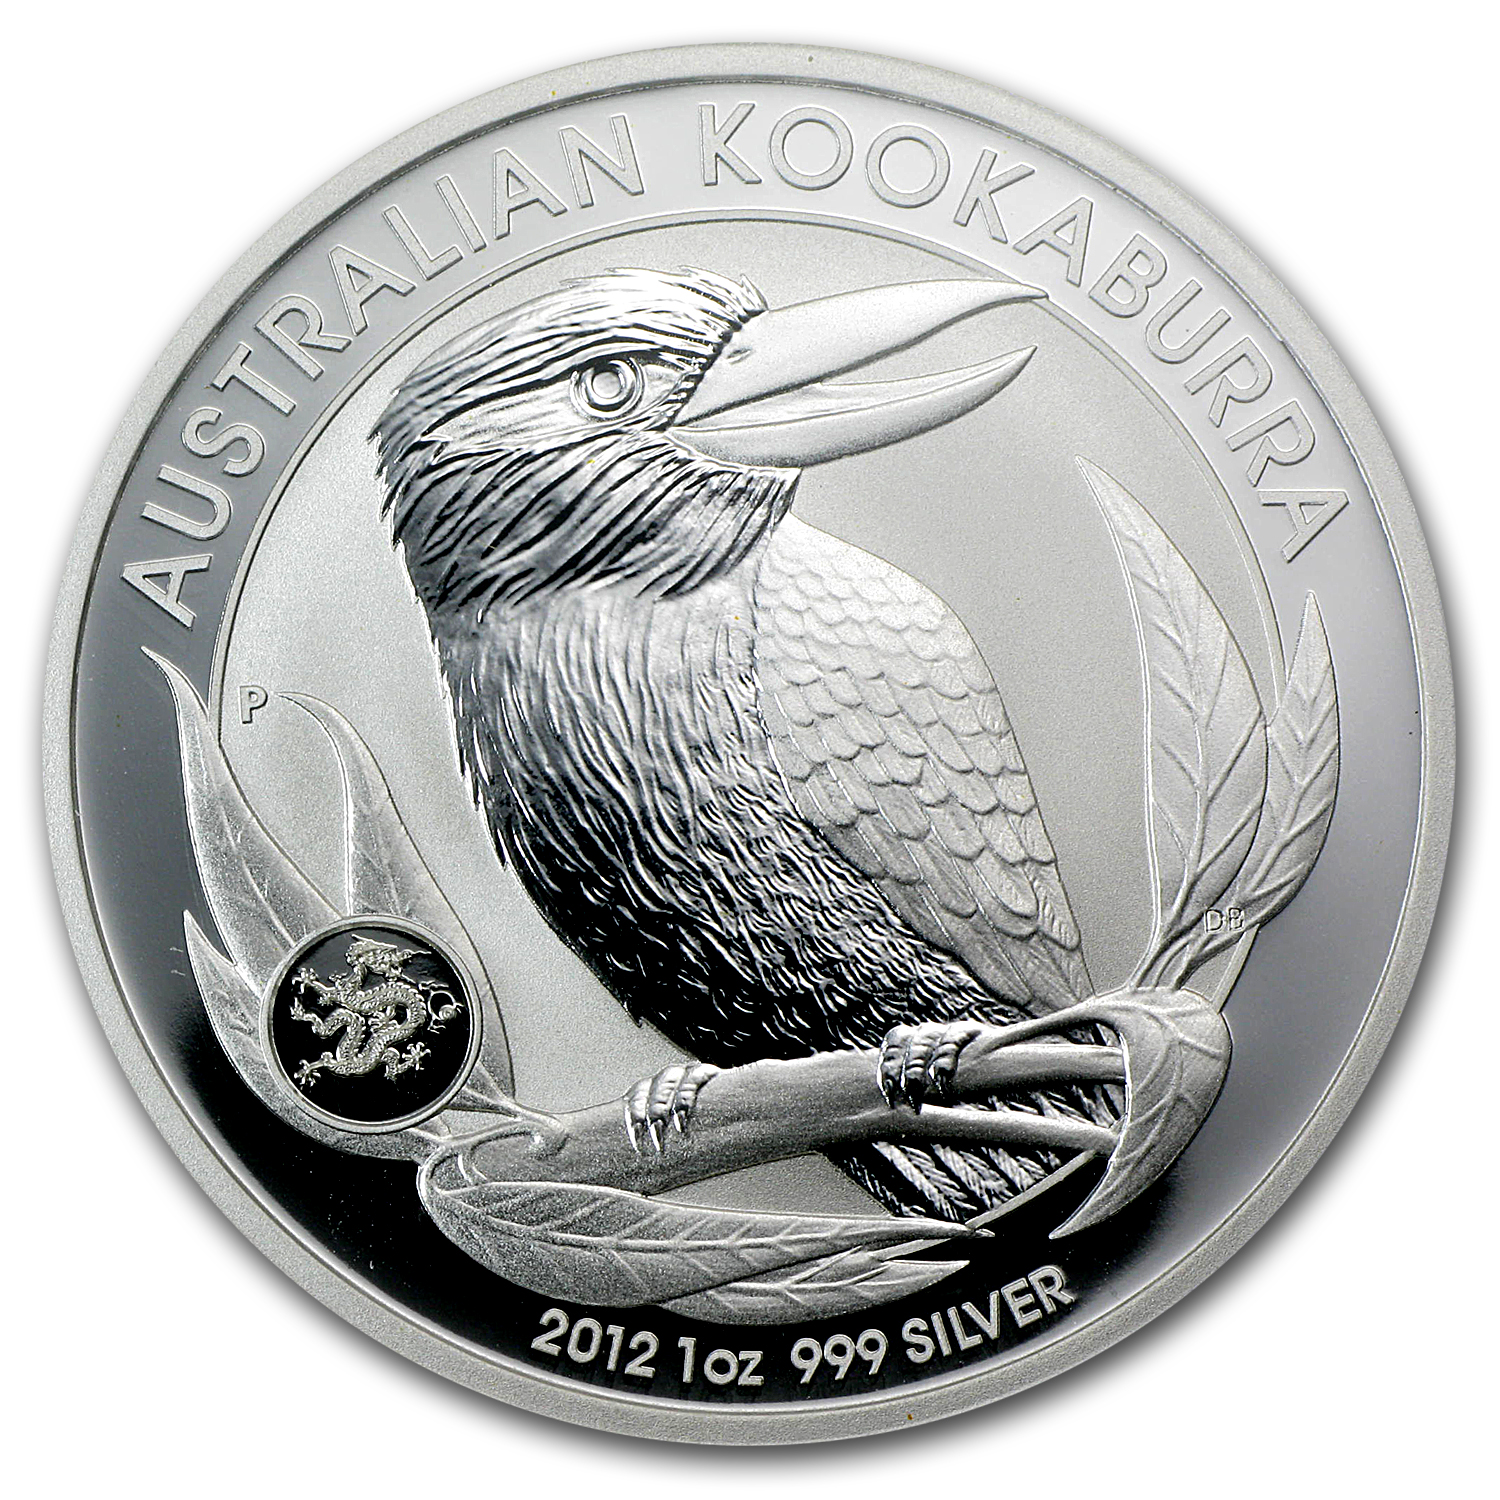 2012 1 oz Silver Kookaburra MS-70 PCGS (FS, Dragon Privy)